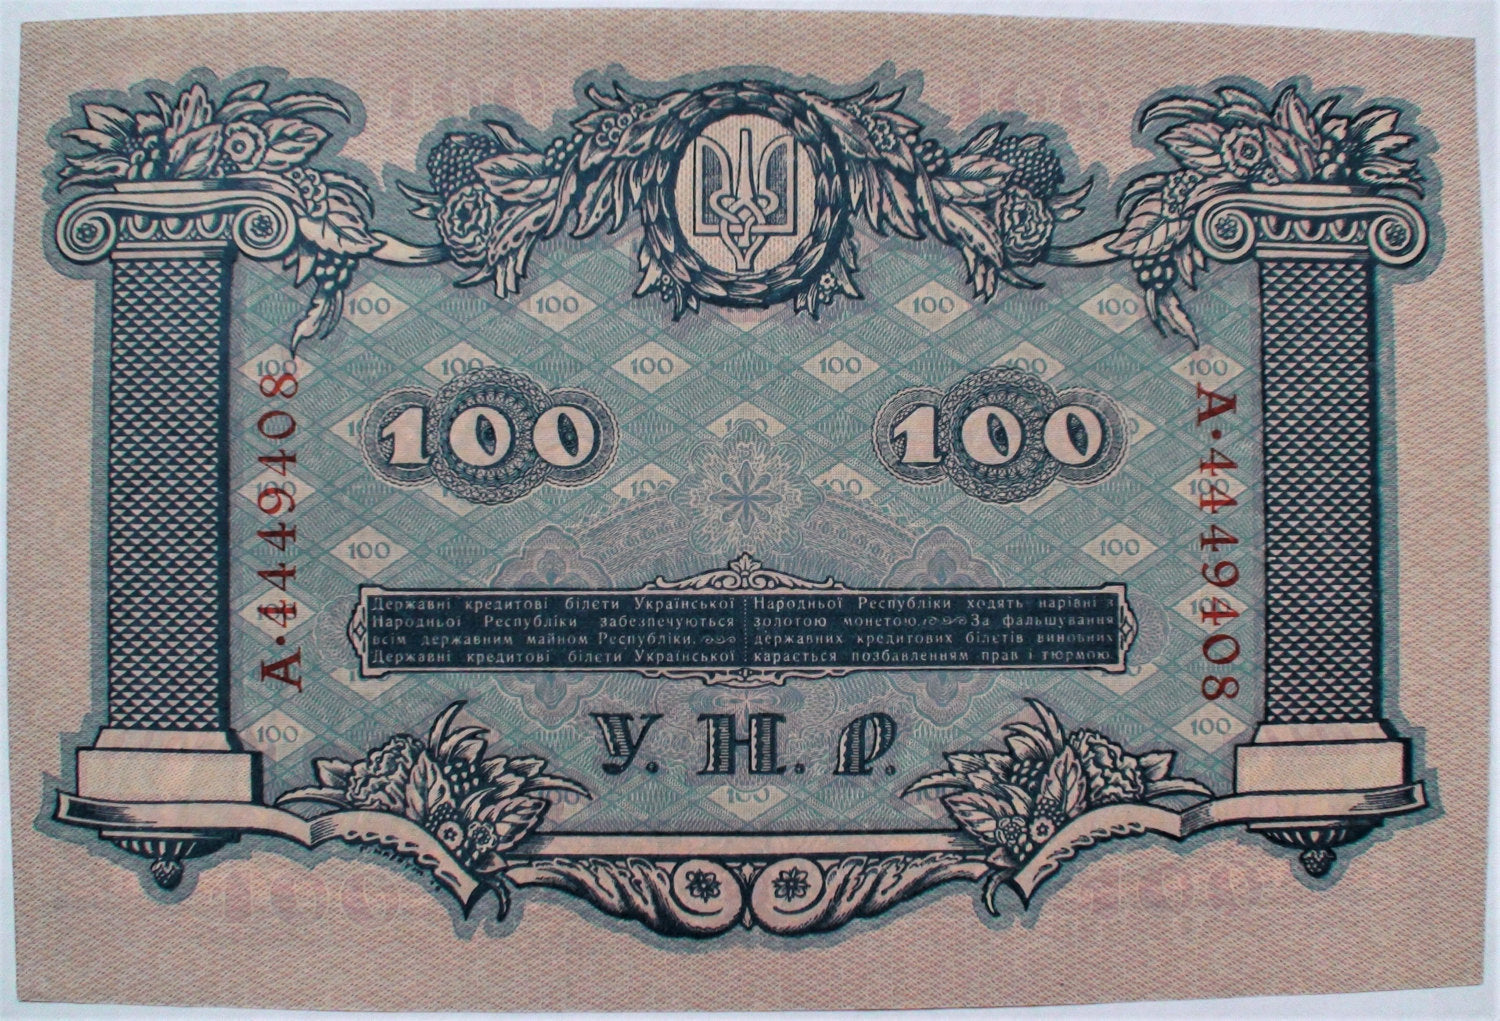 1918 Ukraine 100 Hryven Ukrainian Large Banknote Antique Paper